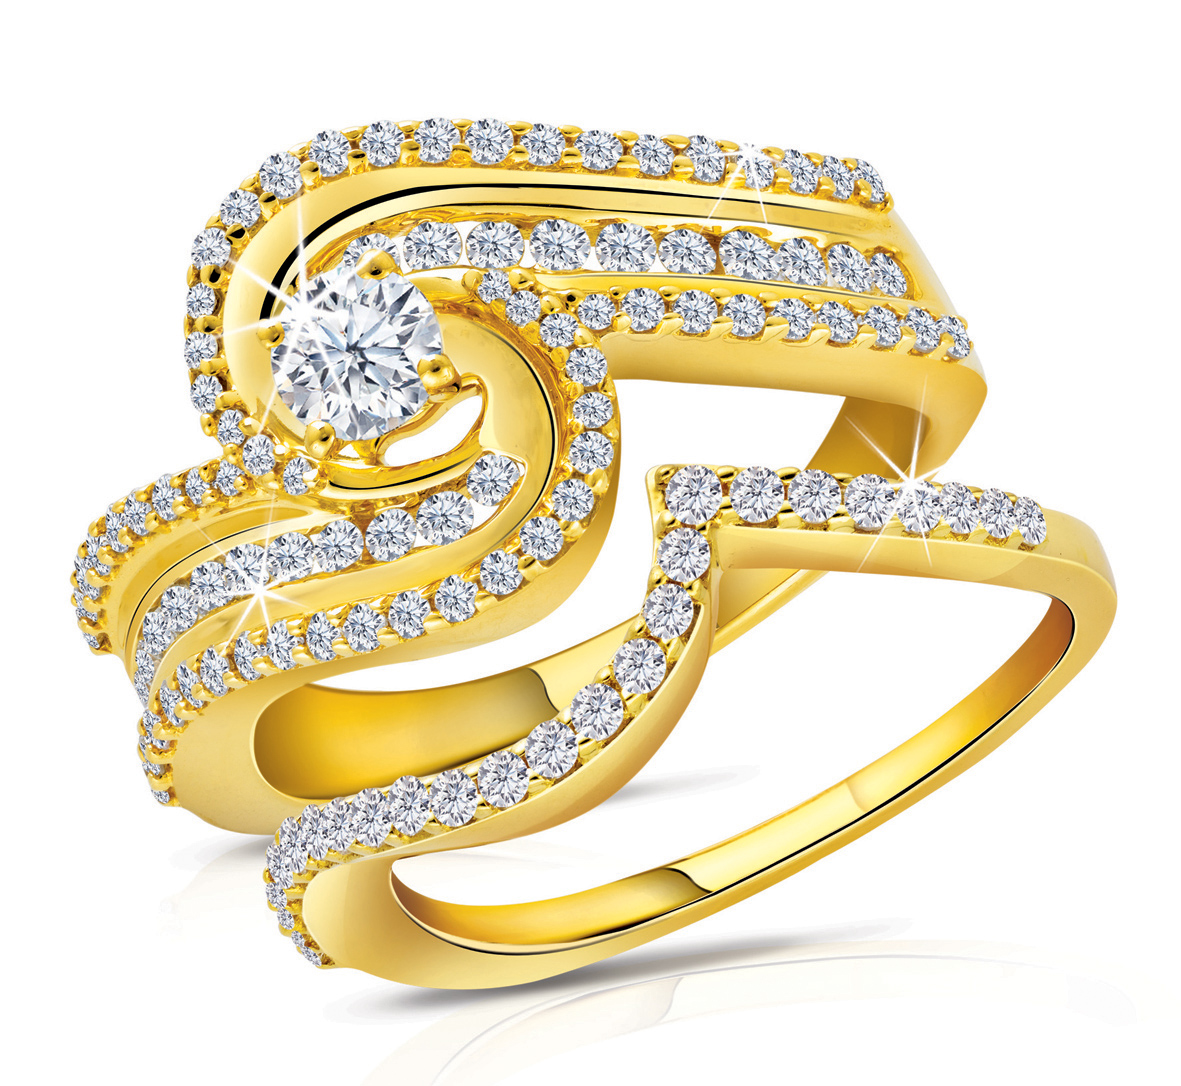 http://2.bp.blogspot.com/_XKLG4D2L6qA/TUkzgIiIcYI/AAAAAAAACwo/_io66I3WJdA/s1600/spiral%20bridal%20diamond%20ring%20from%20Pure%20Gold%20Jewellers.jpg